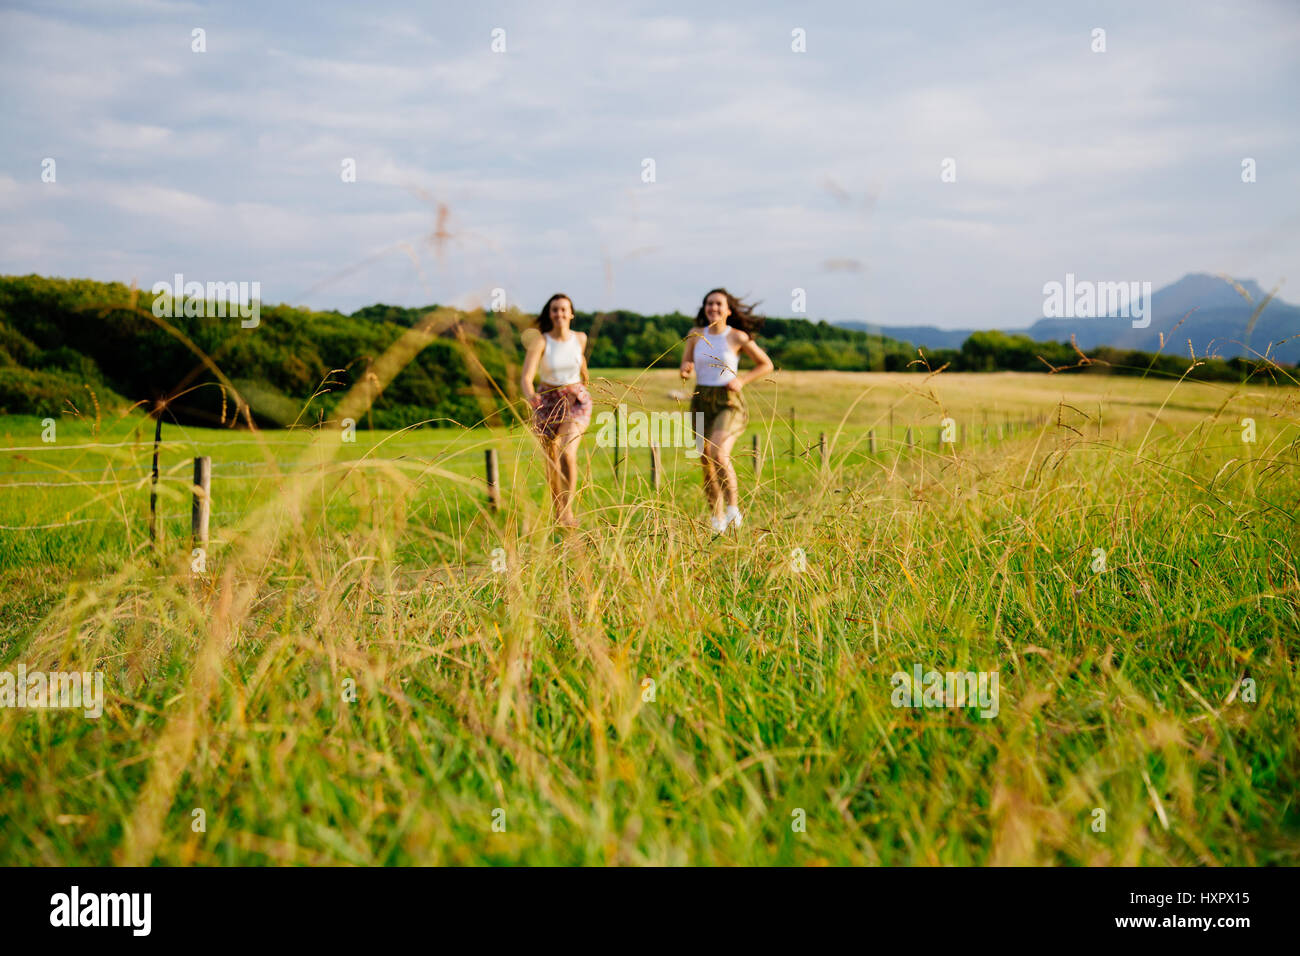 Funny female friends running in a meadow in summer. Focus on the grass, girls out of focus - Stock Image